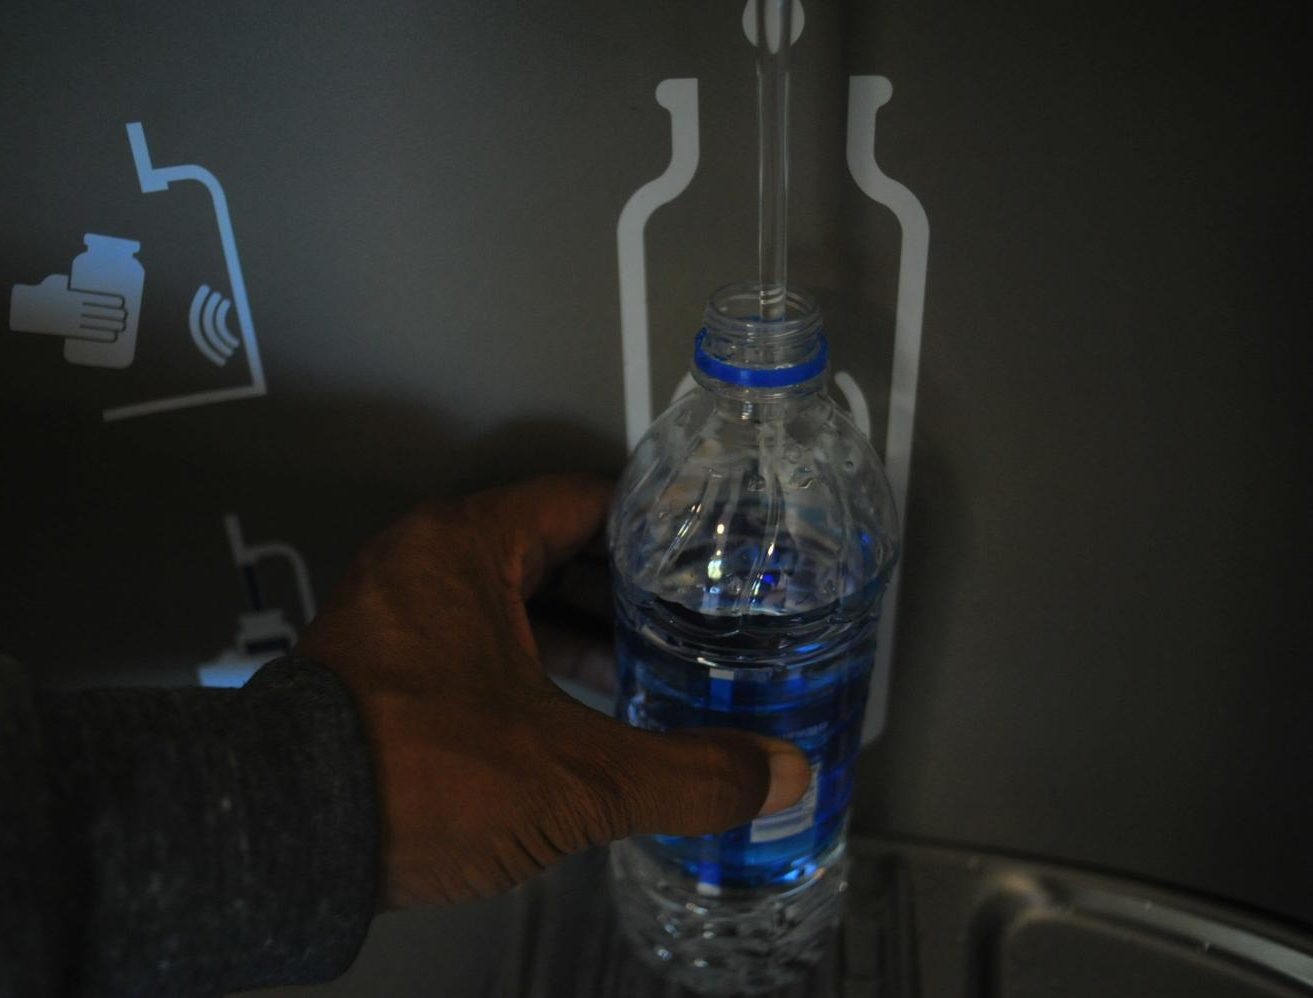 The automated water fountain systems, such as this one in the GE Building, need their filters changed regularly. If the water fountain has a red light under the filter status, it means the filter needs to be changed.